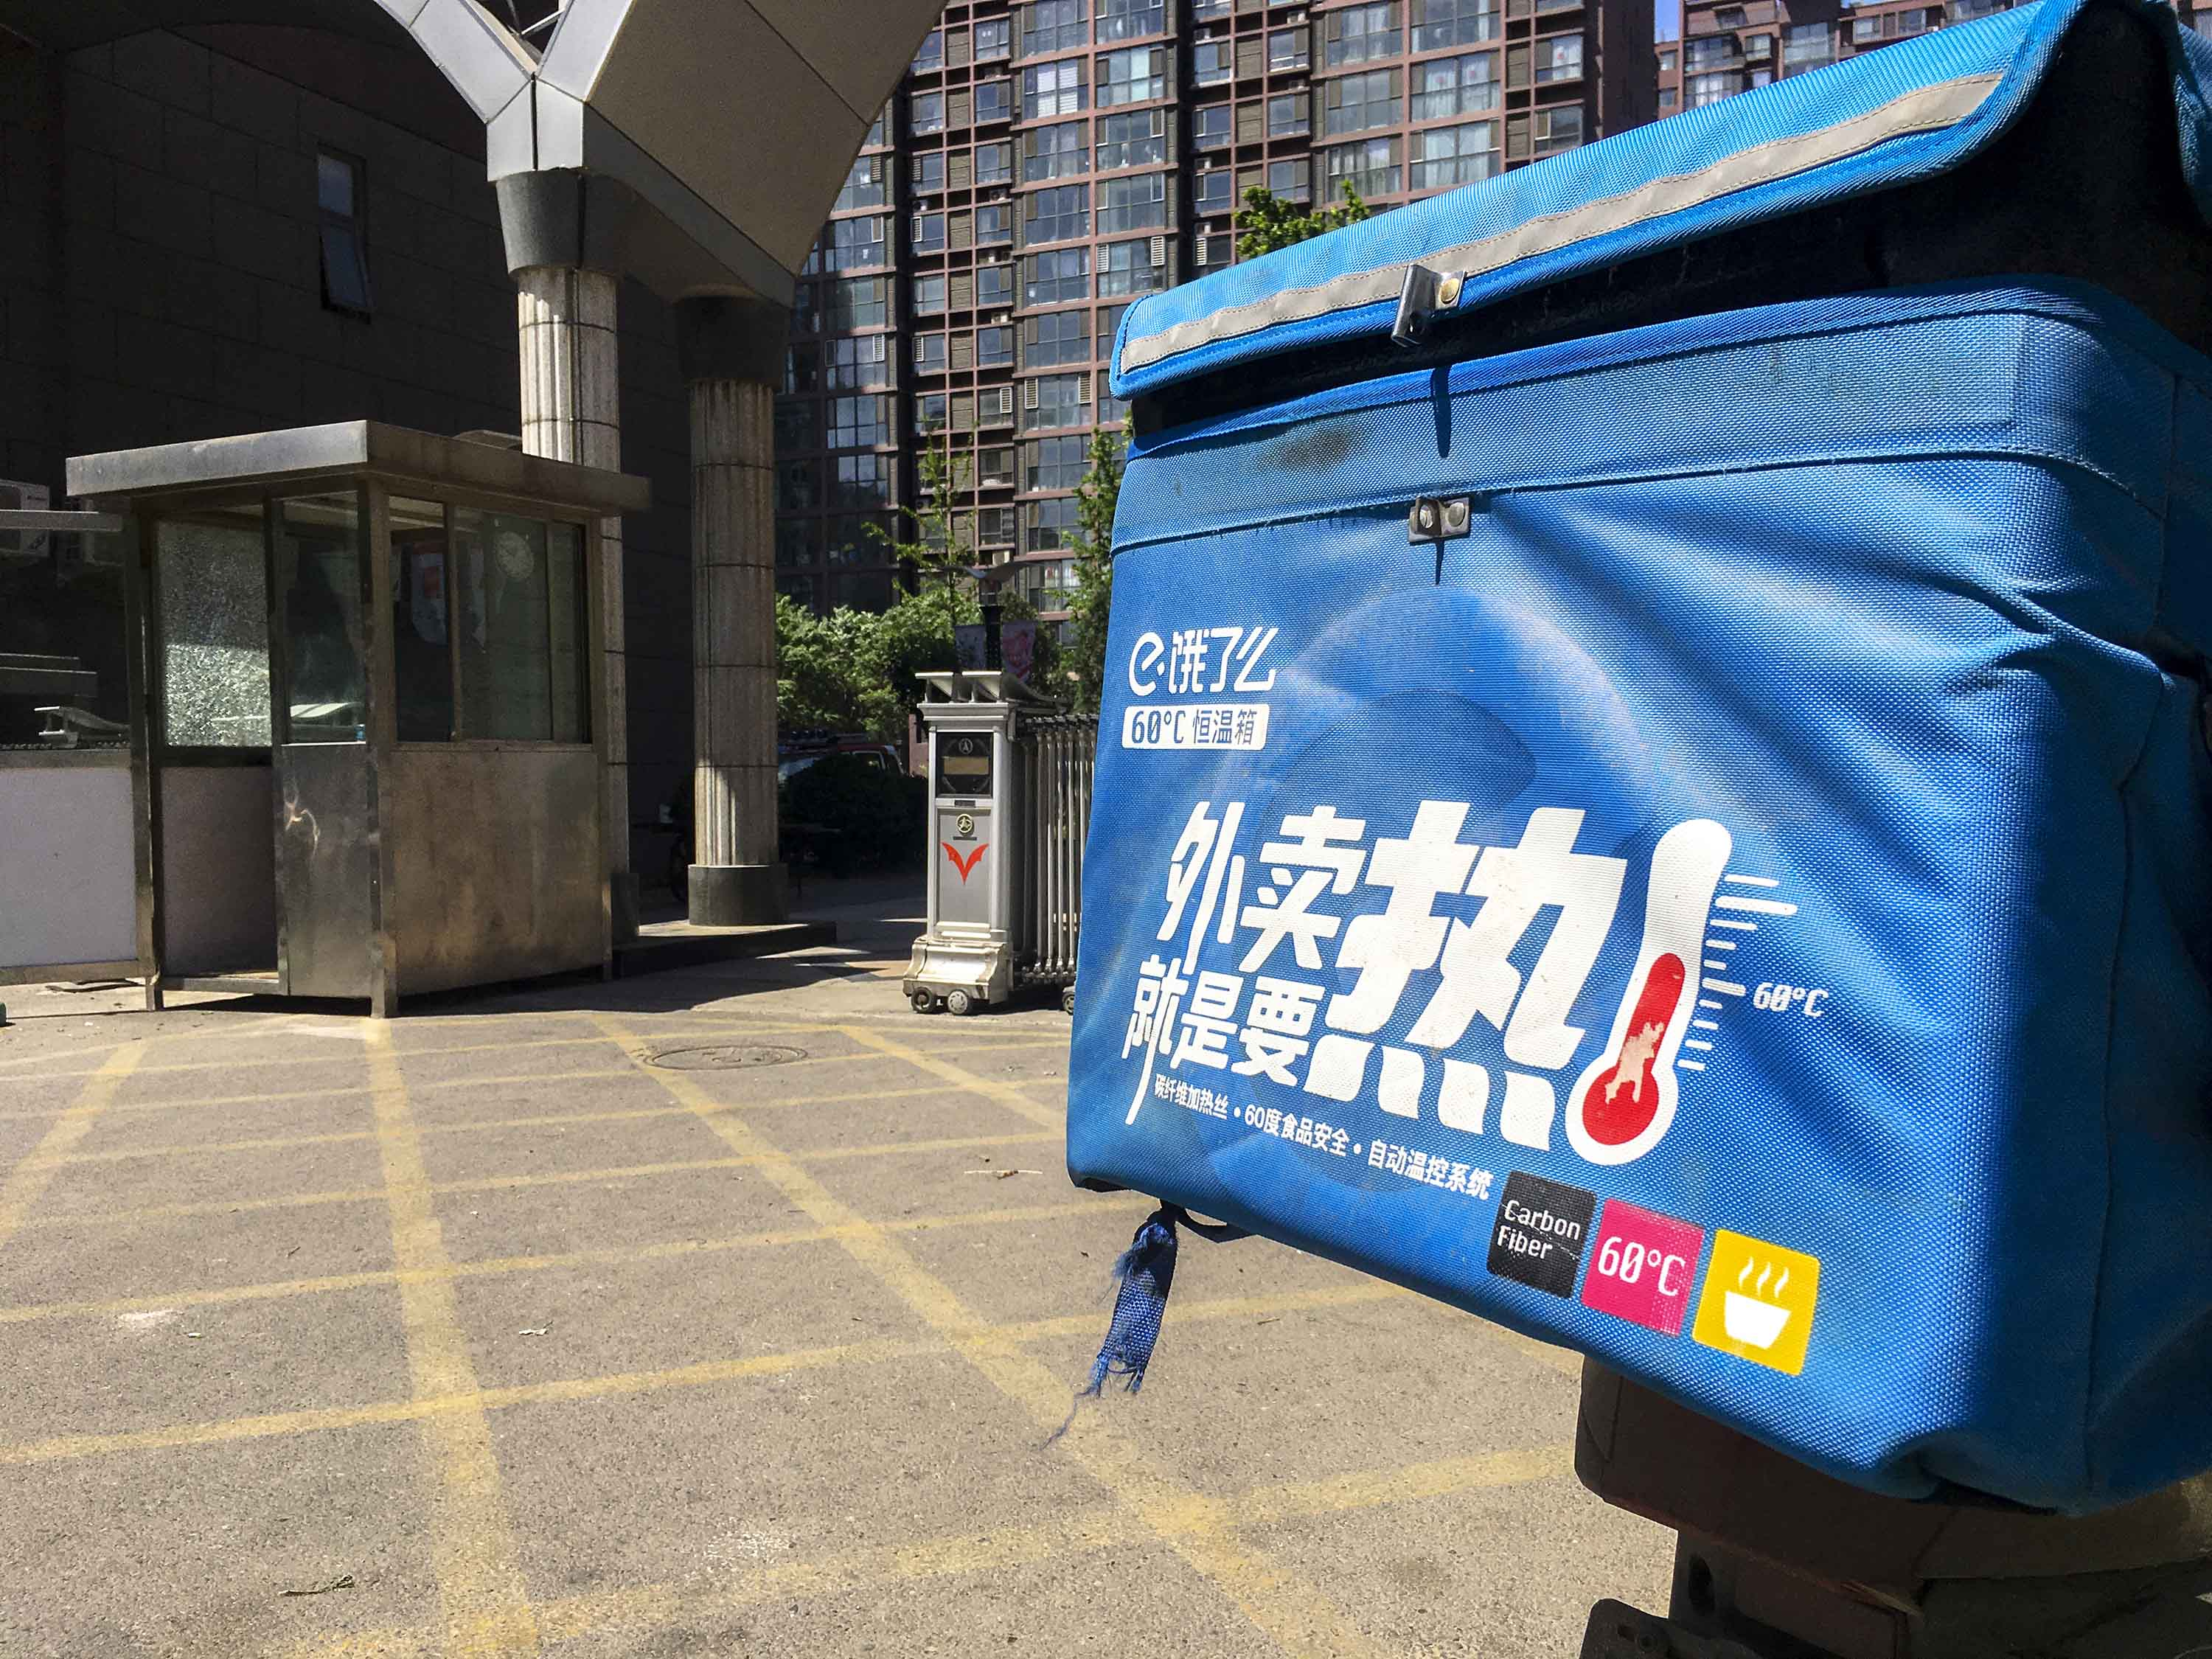 A motorcycle for take-out delivery service Ele.me is seen parked in a residential district of Beijing, in May 2017.